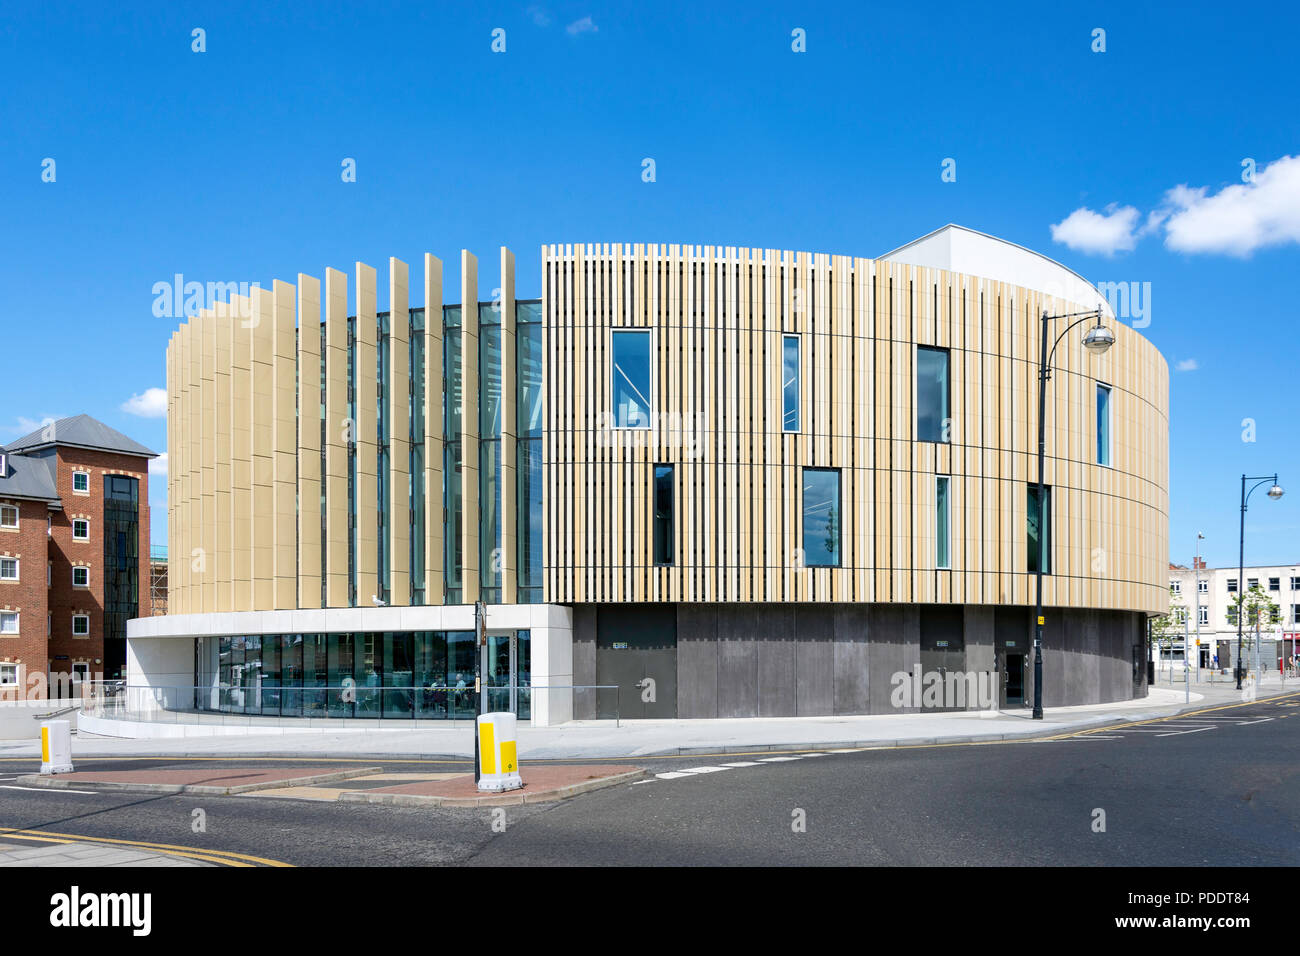 The Word, National Centre for the Written Word, Market Place, South Shields, Tyne and Wear, England, United Kingdom - Stock Image